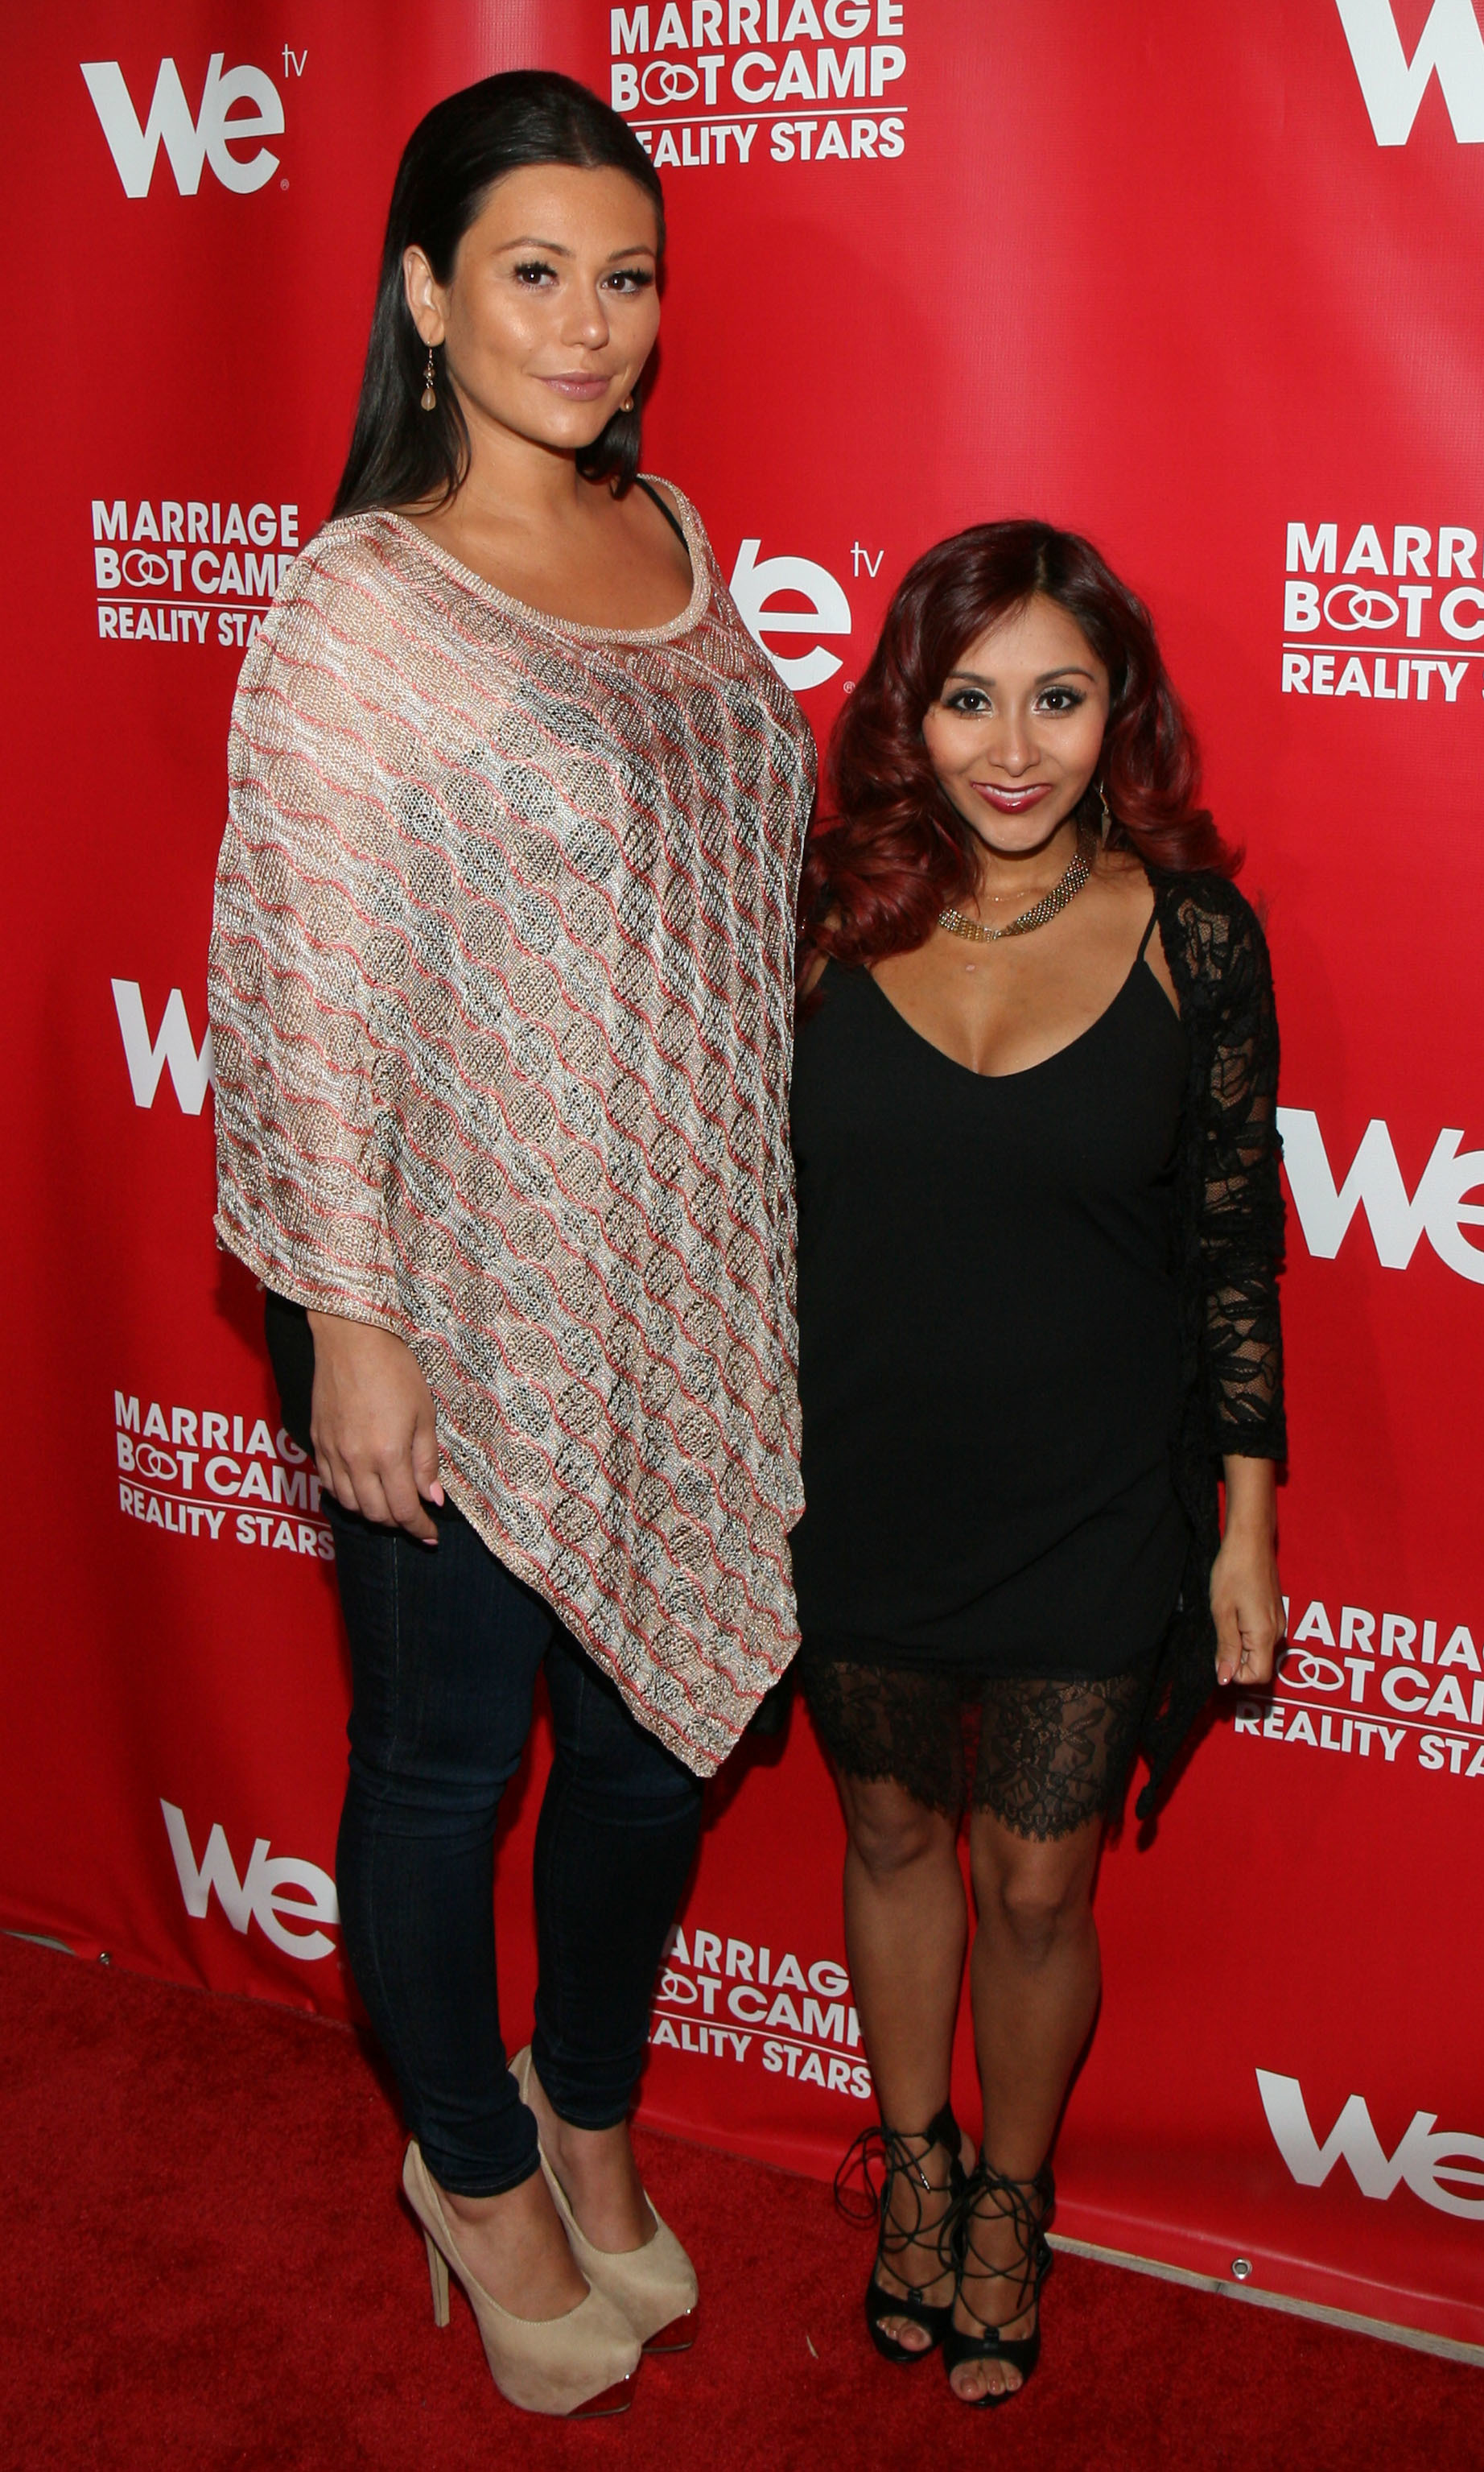 jwoww and snooki pregnant